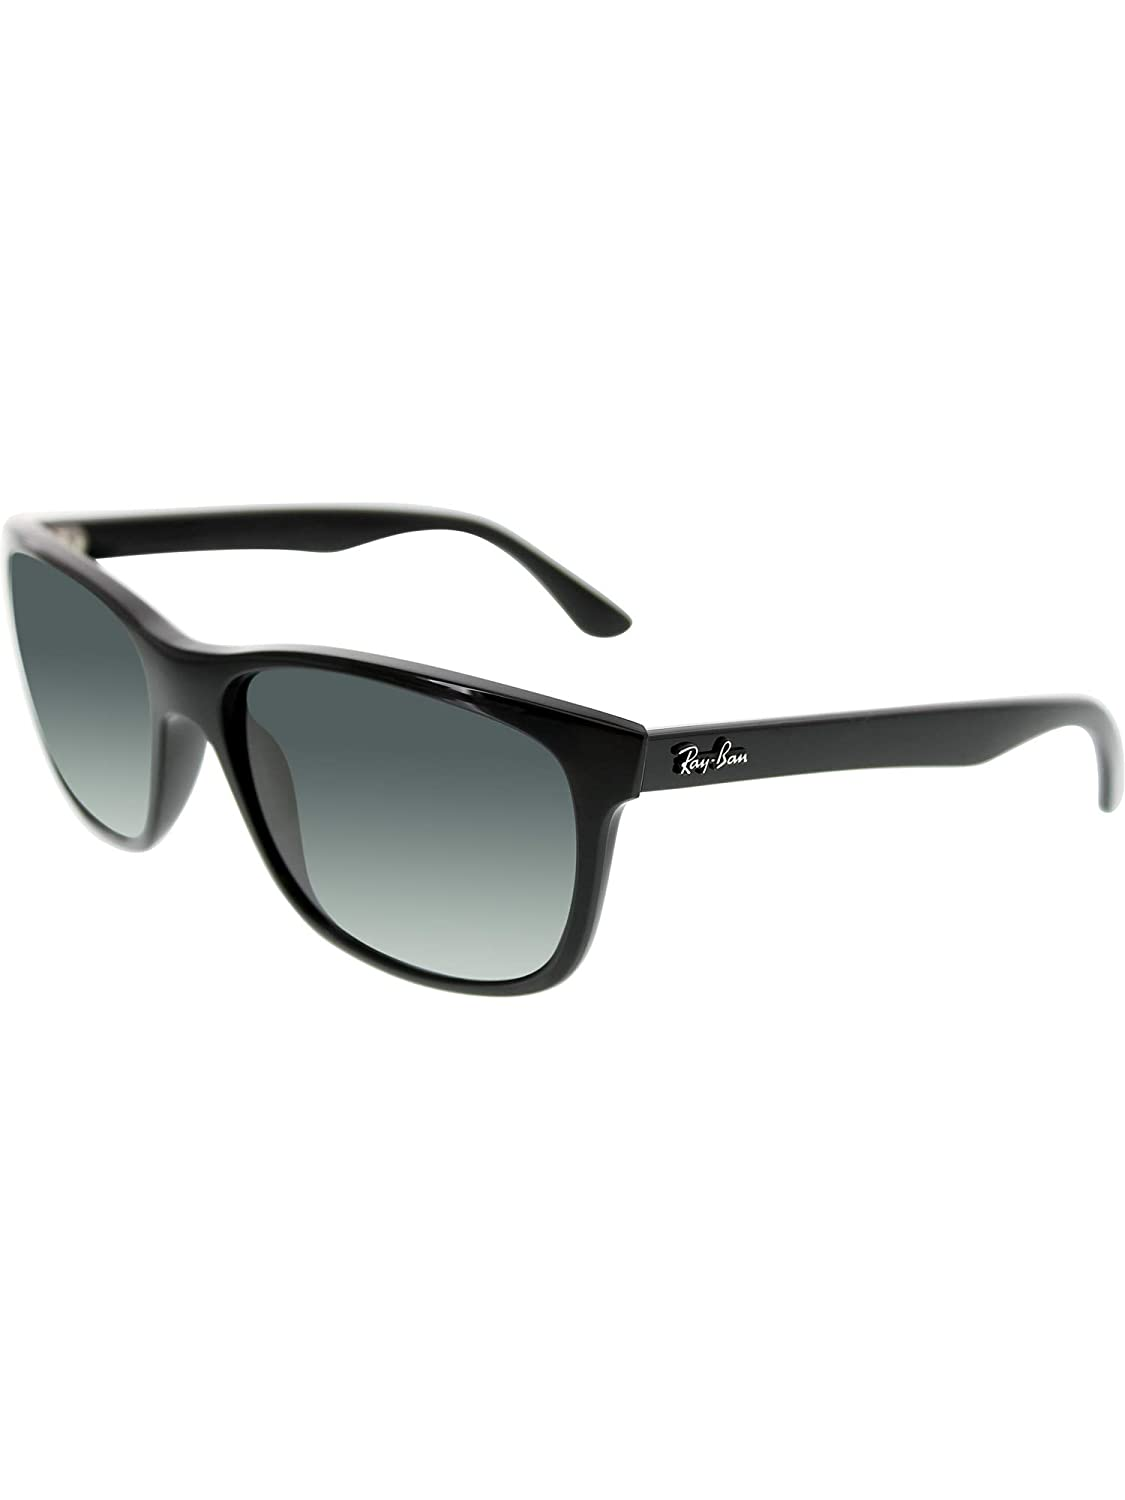 d823a1651e5 Amazon.com  Ray Ban RB4181 Sunglasses-601 71 Black (Gradient Gray Lens)-57mm   Ray-Ban  Shoes